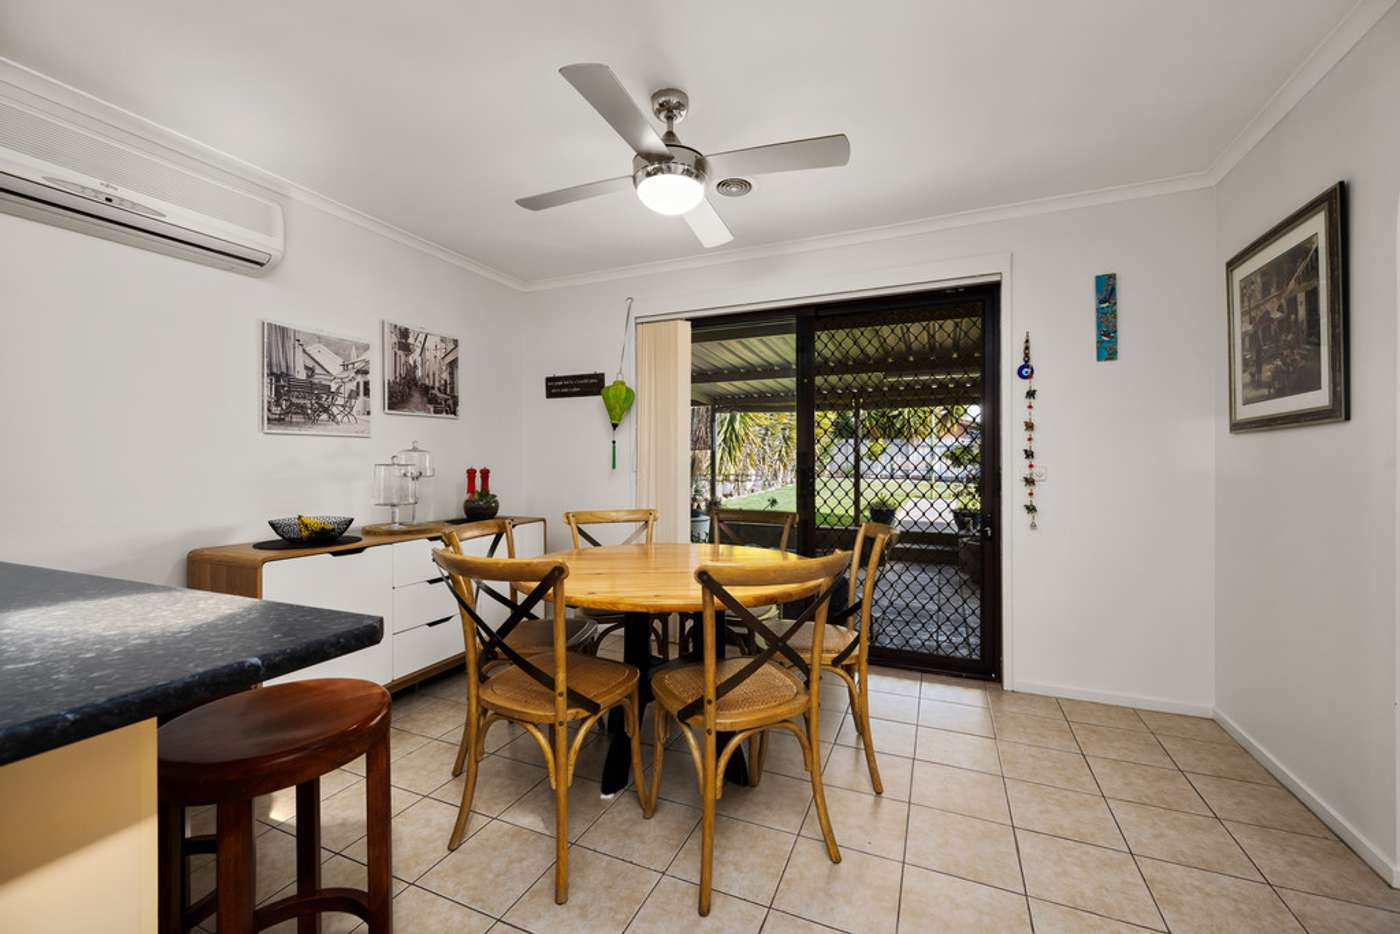 Fifth view of Homely house listing, 14 Lynch Court, Wodonga VIC 3690